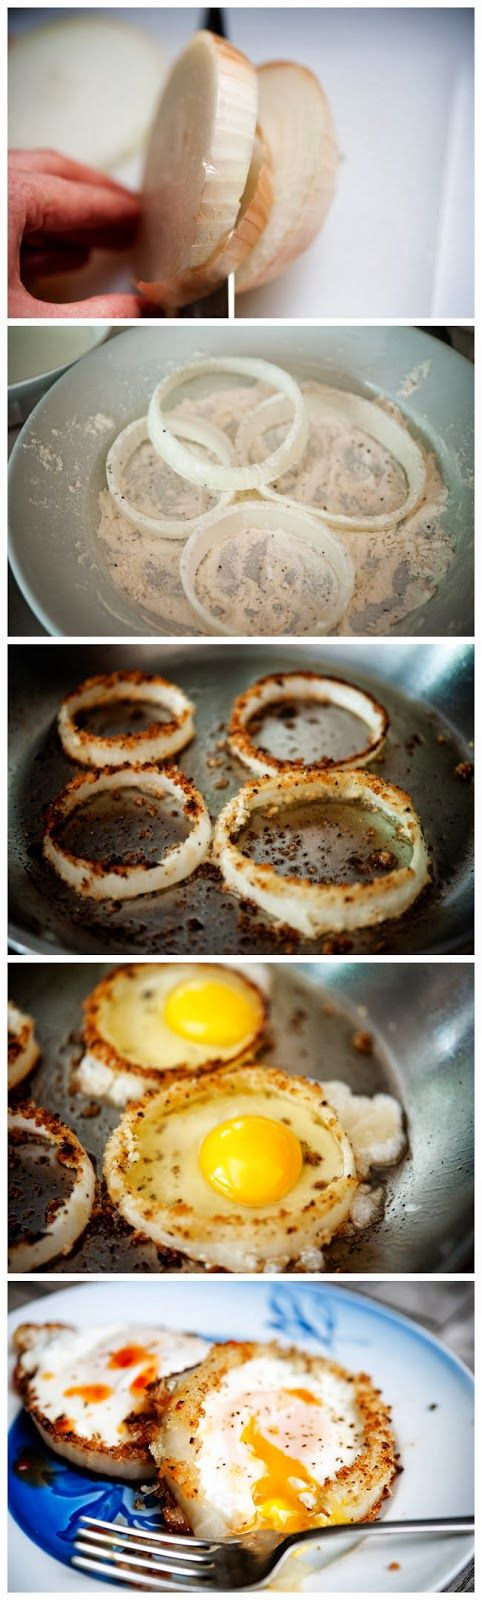 A fun twist on egg-in-the-hole and a great excuse to have onion rings for breakfast.